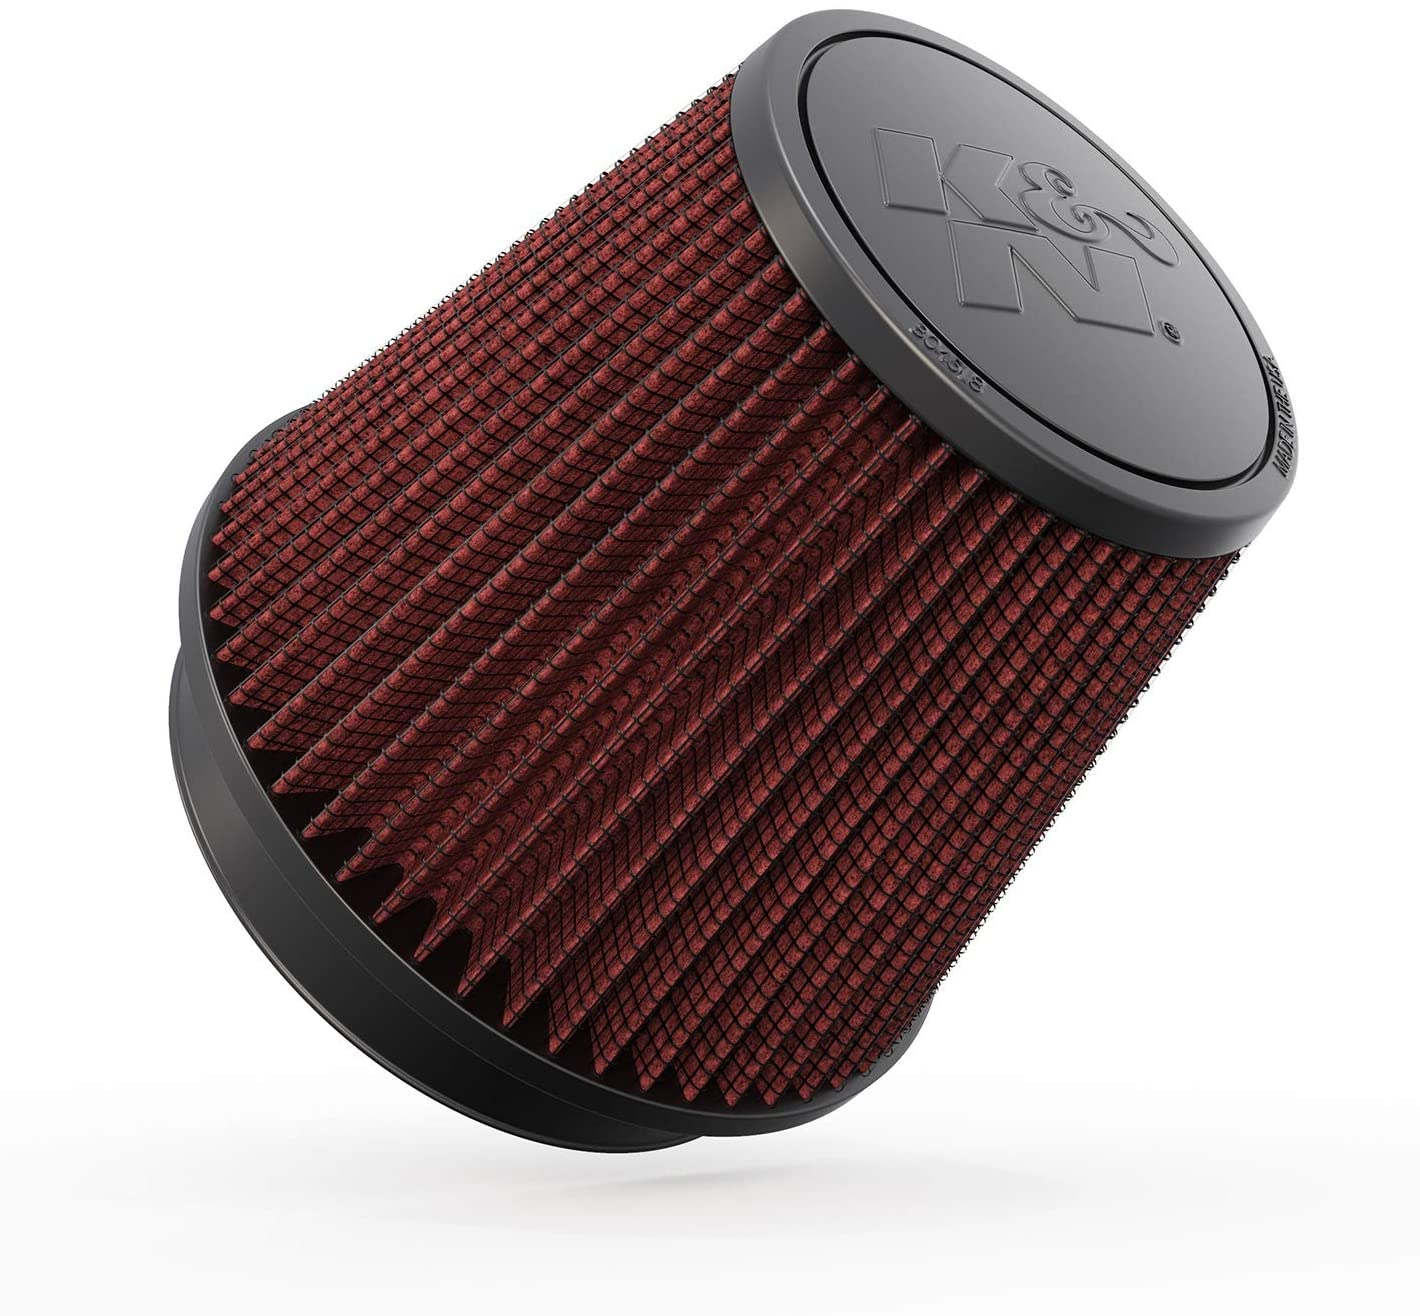 K&N Universal Clamp-On Air Filter: High Performance, Premium, Washable, Replacement Engine Filter: Flange Diameter: 5 In, Filter Height: 5.5 In, Flange Length: 1 In, Shape: Round Tapered, RU-5147